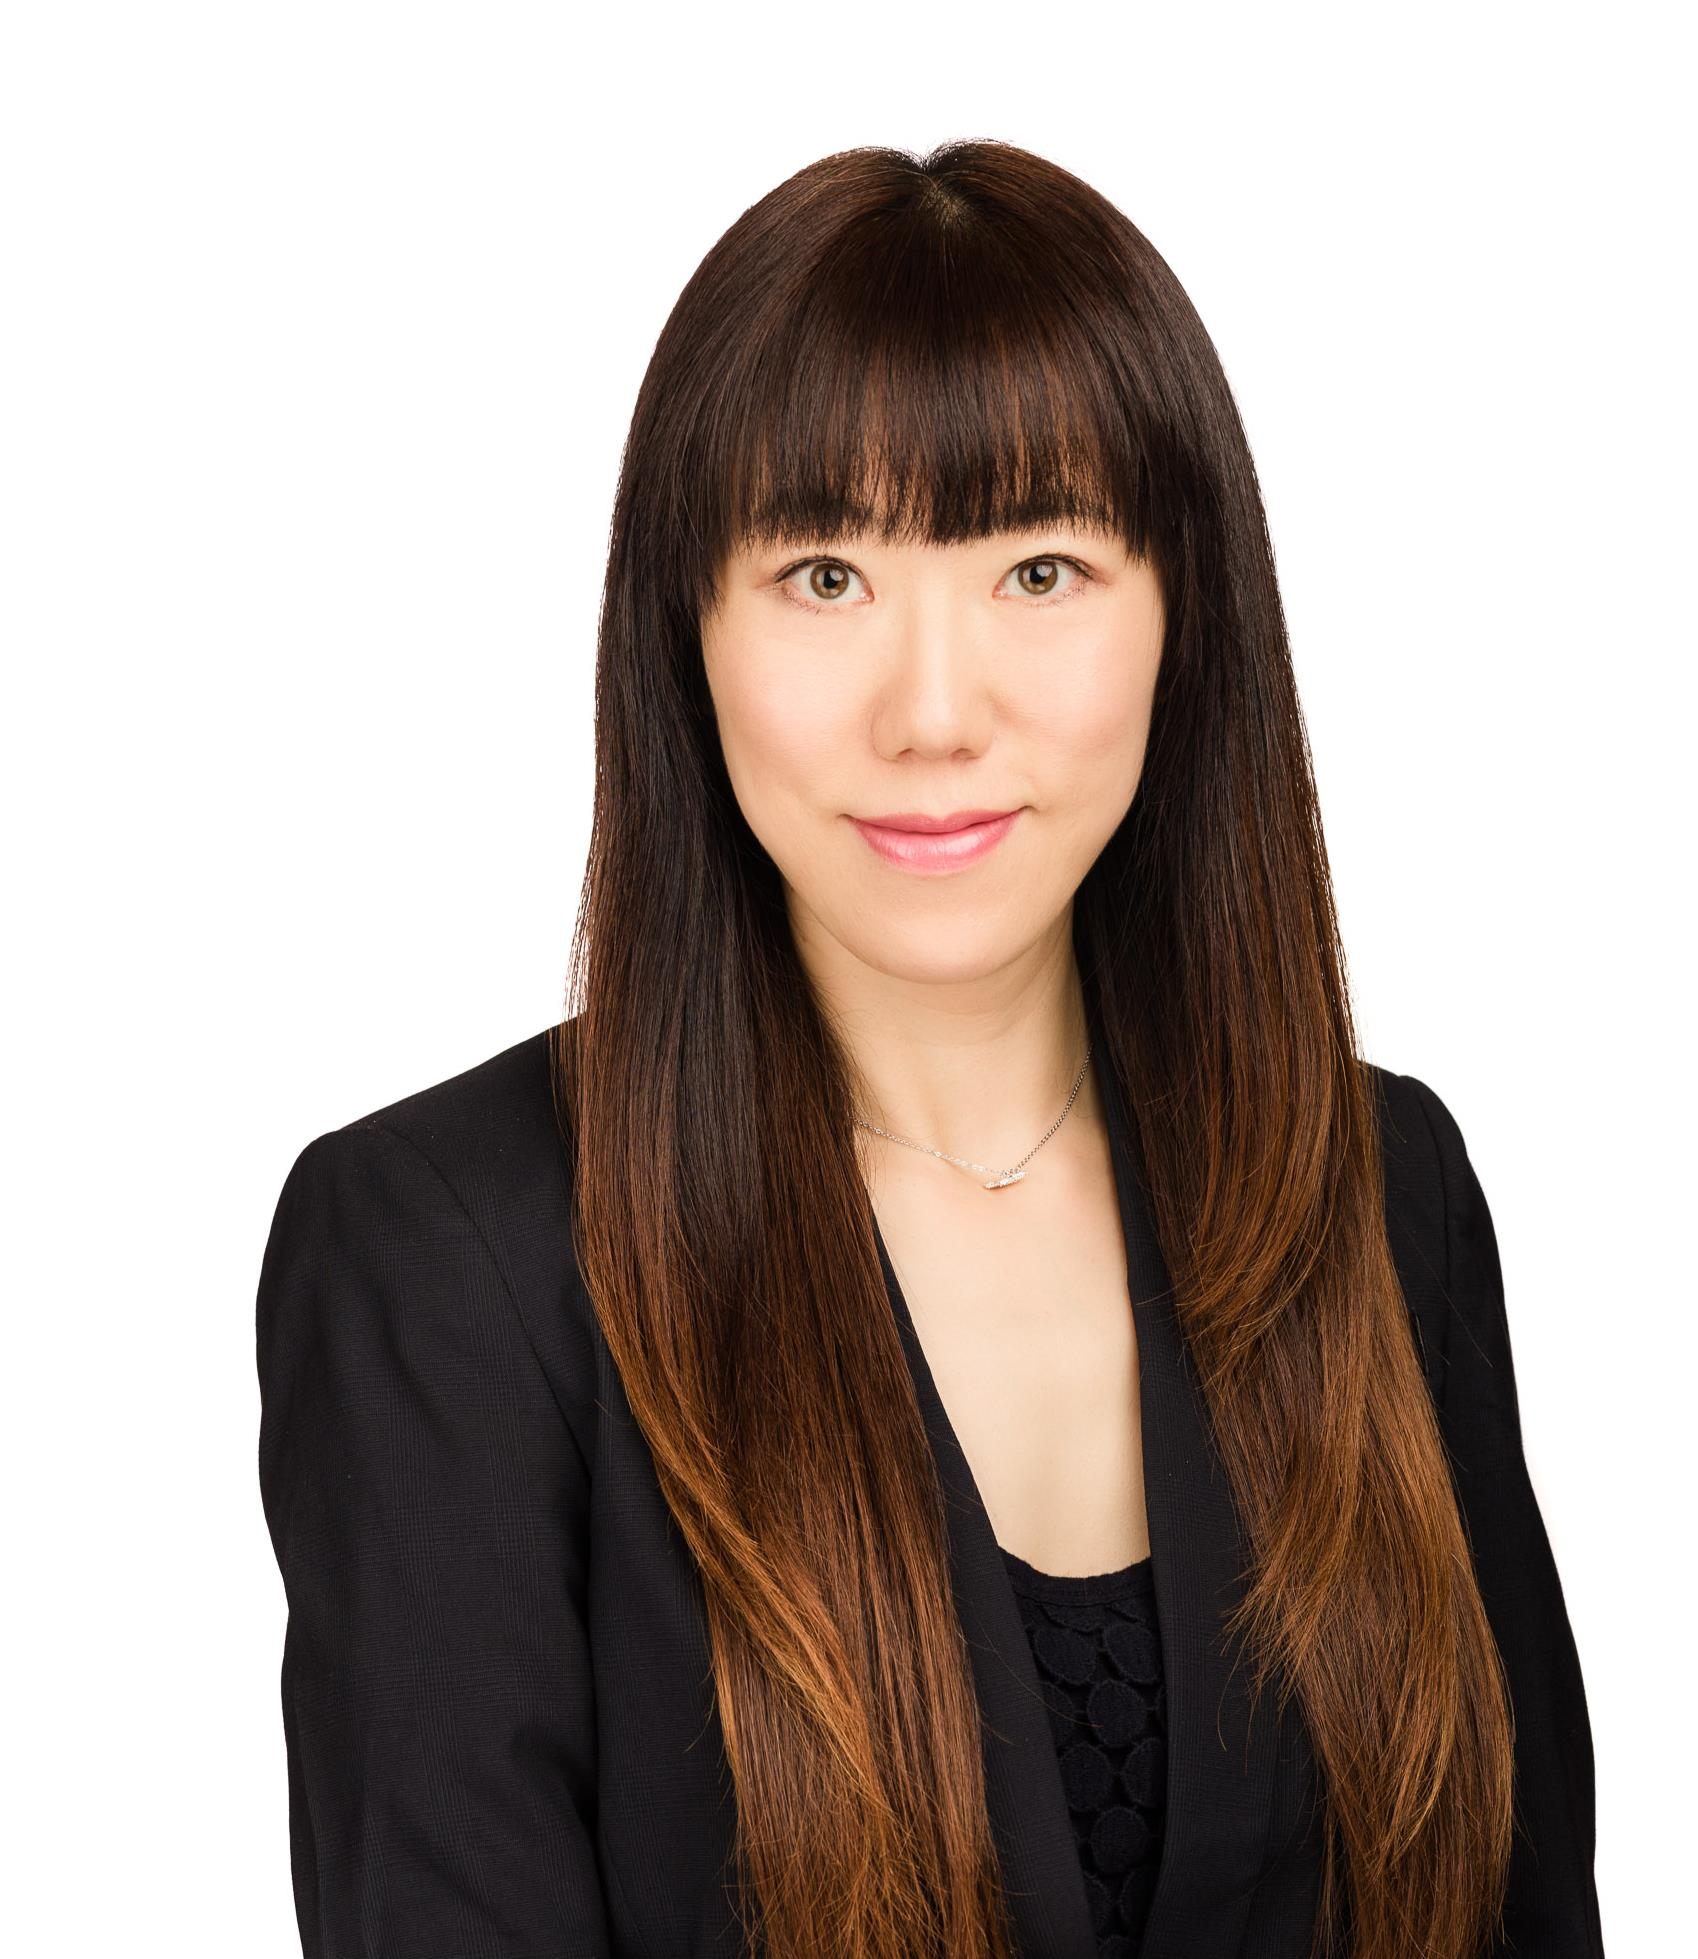 Cindy Li is a licensed real estate agent in Edmonton AB